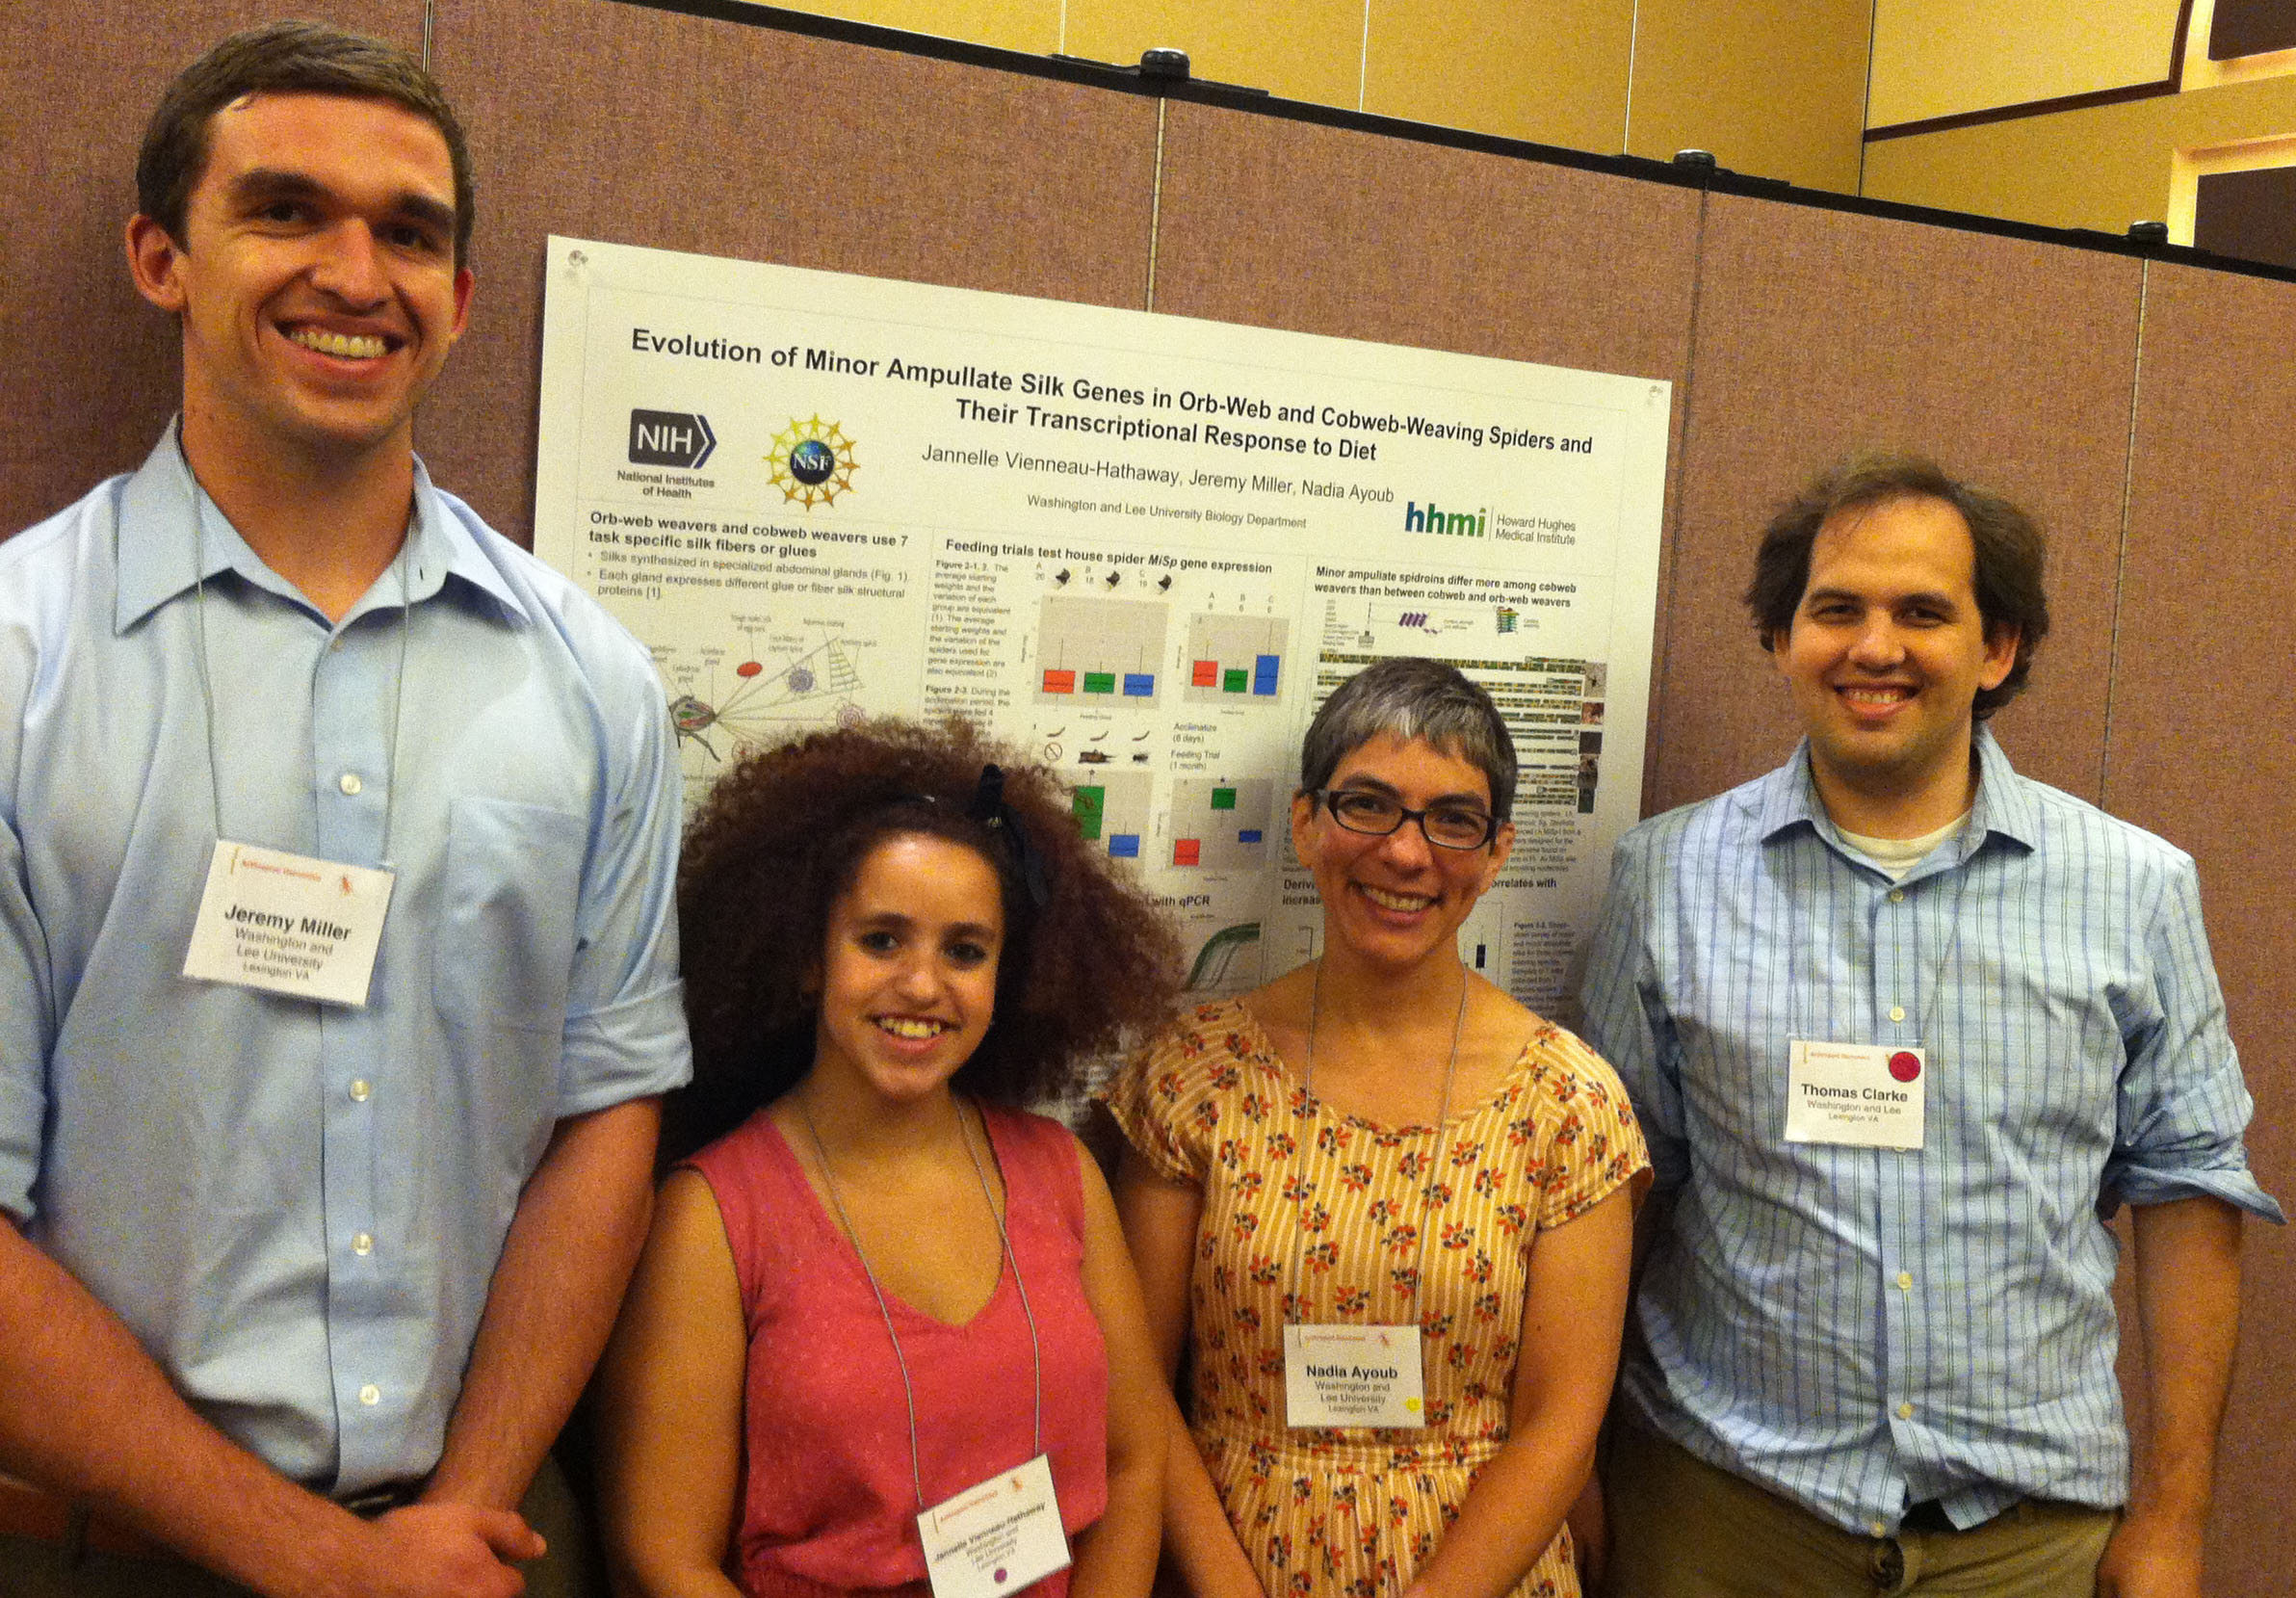 Undergraduates, Jeremy Miller (far left) and Jannelle Vienneau-Hathaway (second from left and first author), worked with Nadia Ayoub (second from right) on cobweb spiders' minor ampullate silk genes. Bioinformatics specialist, Toby Clarke (far right), also co-authored the recent publication. Pictured at Arthropod Genomics Symposium, 2015